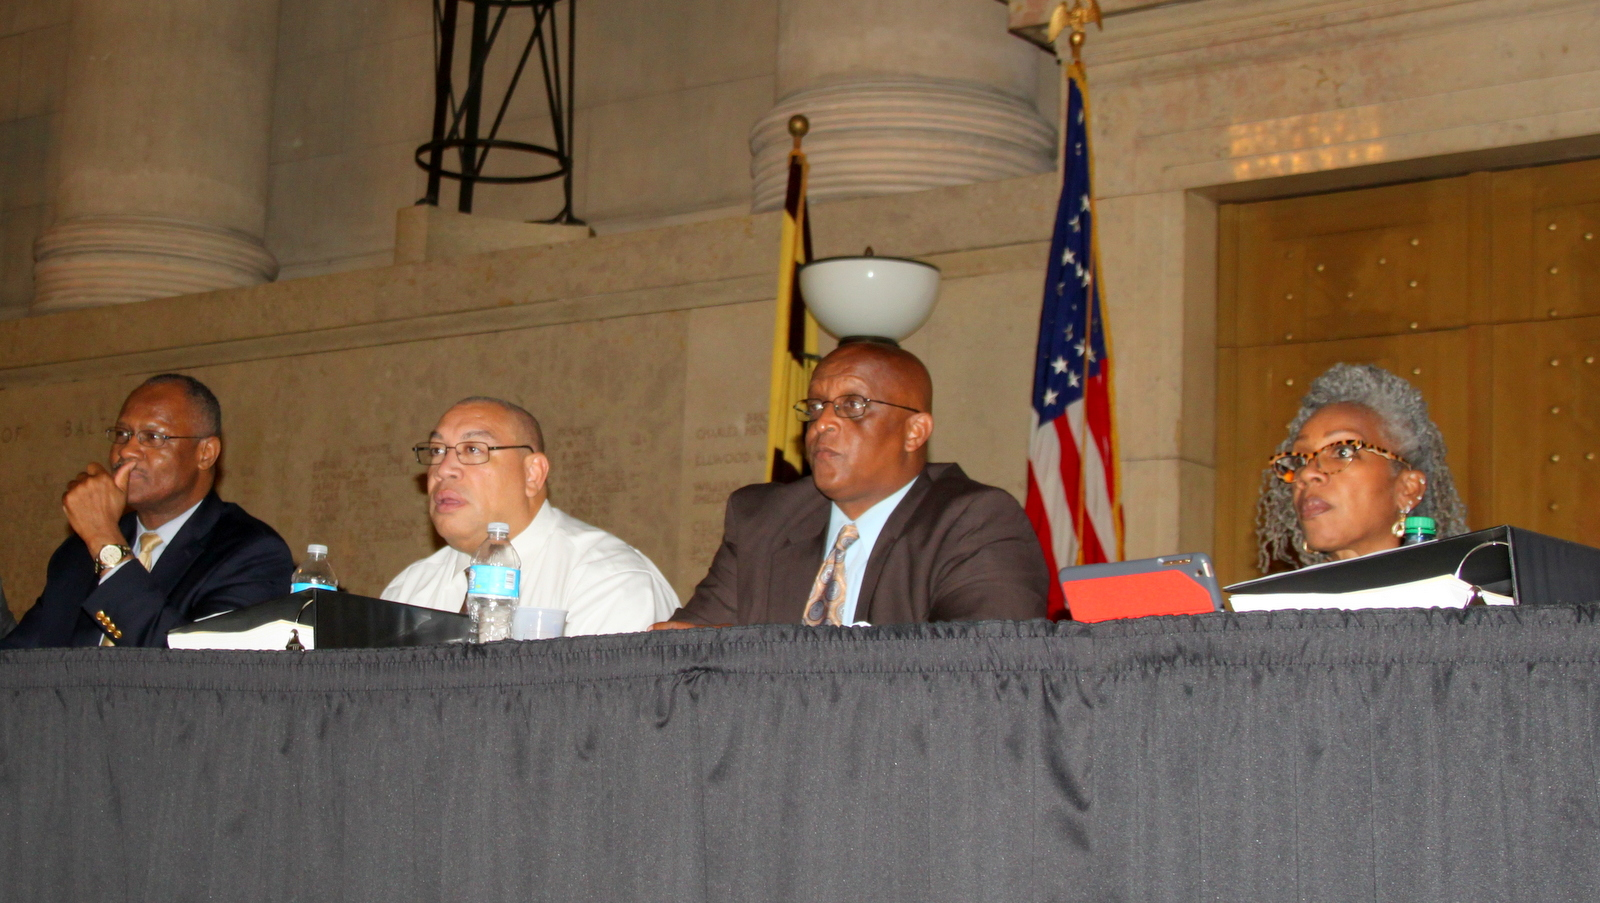 Councilmembers (l-r) Carl Stokes, Bill Henry, Jack Young (Chairman) and Helen Holton at committ4ee hearing on Port Covington. (Fern Shen)